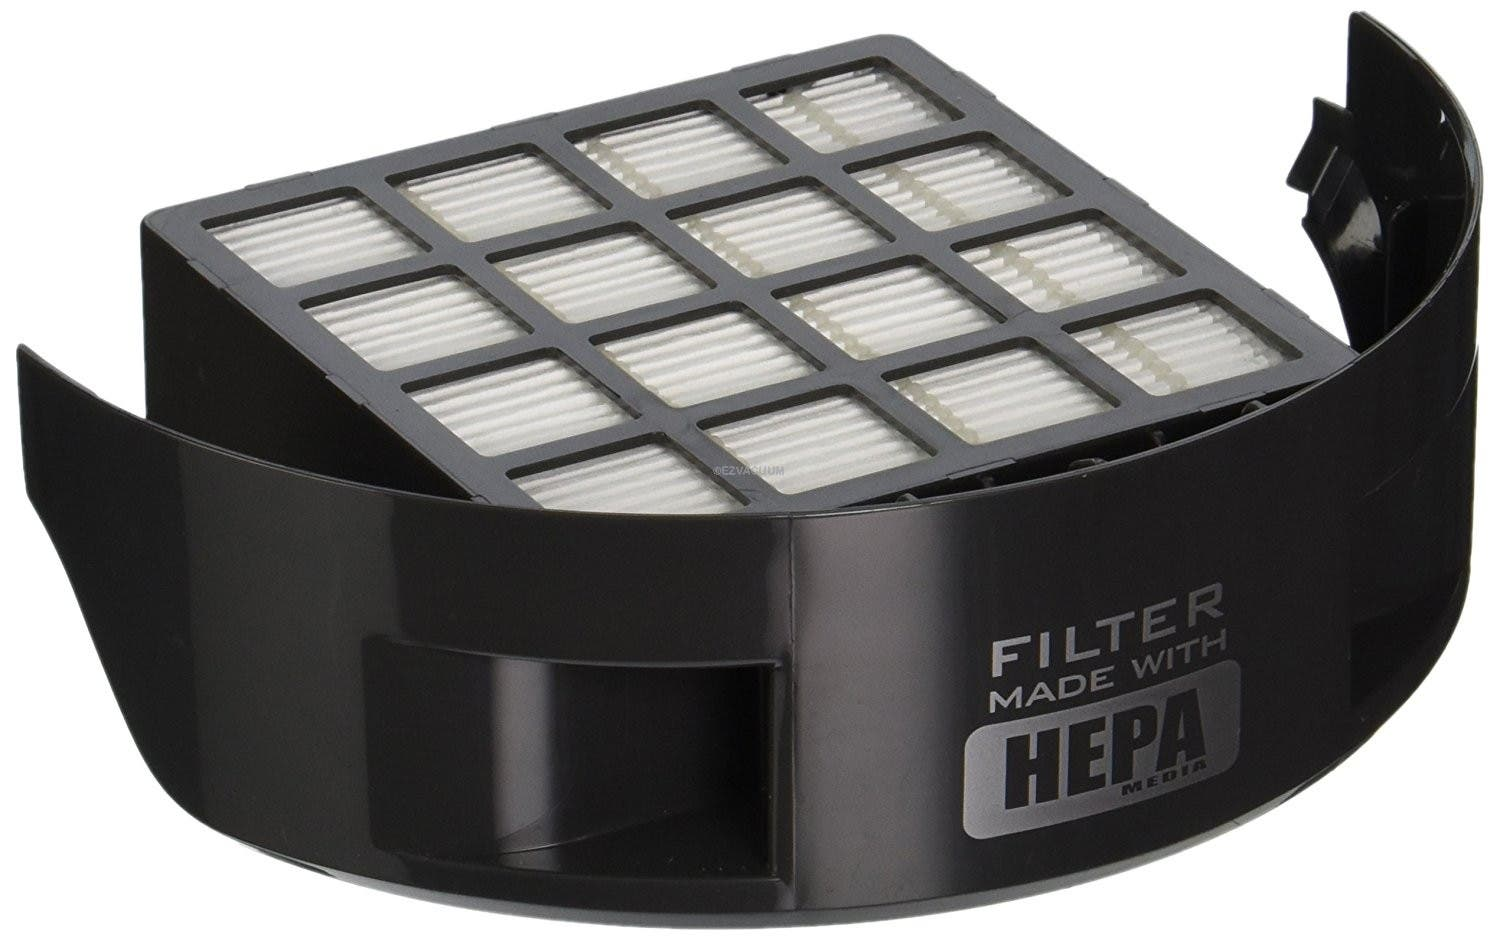 EXHAUST FILTER-HOOVER PET Rewind